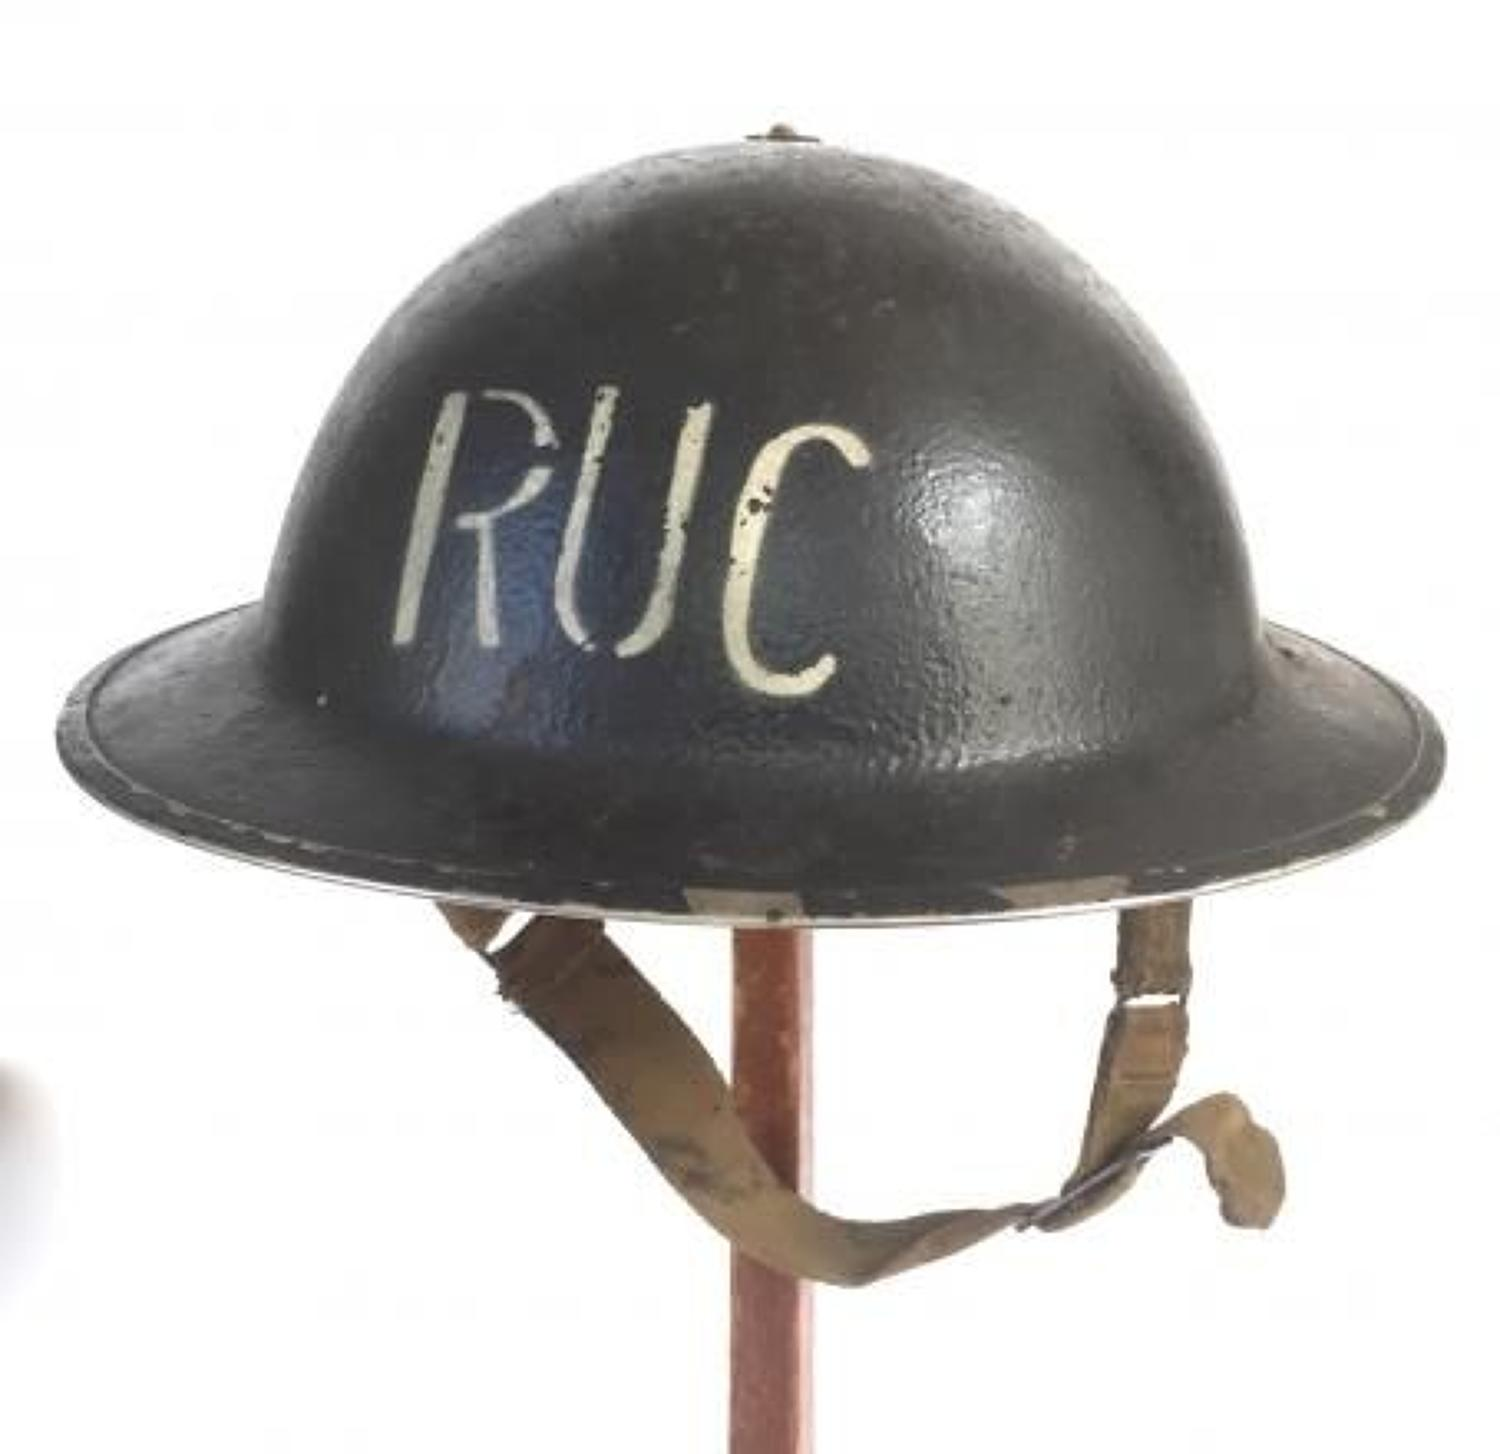 WW2 Royal Ulster Constabulary 1940 Dated Helmet.